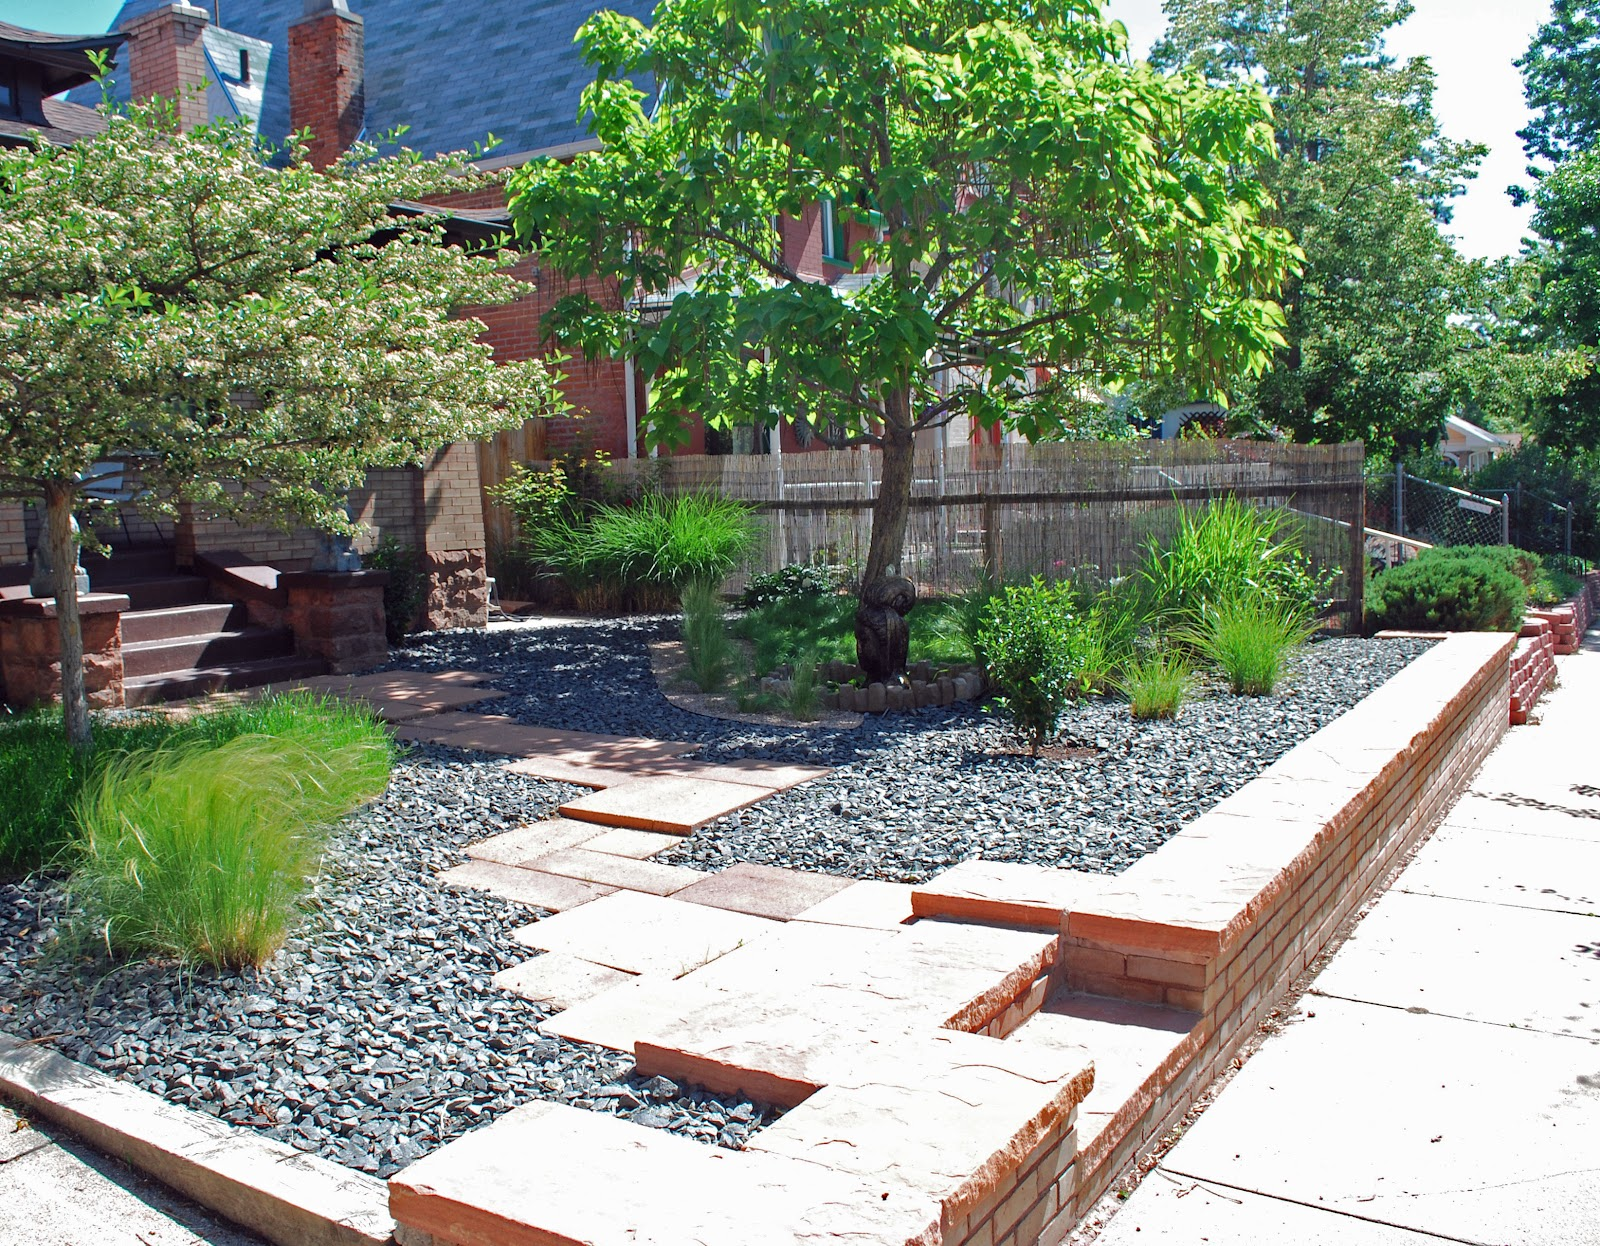 Landscape design focus low maintenance garden share bristol for Landscape design